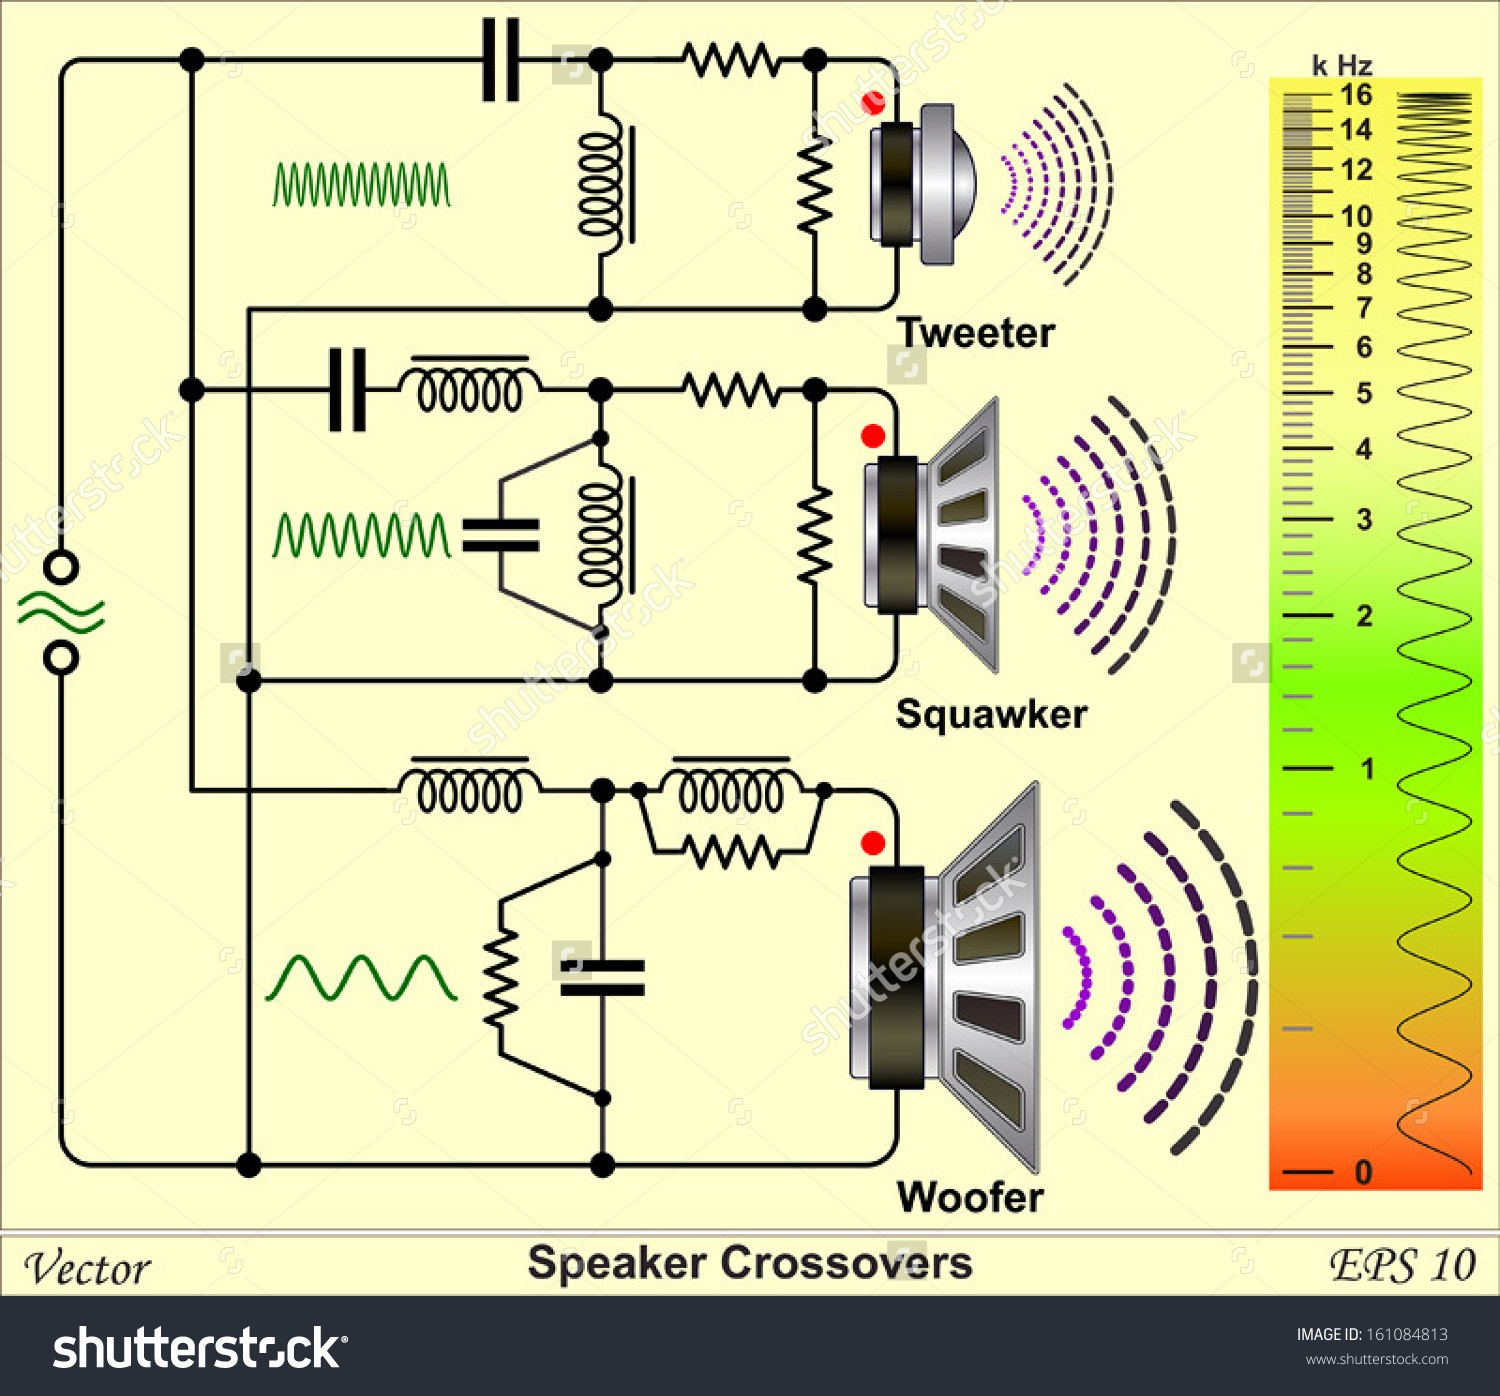 Car Audio Crossover Installation Diagram Johnieo Page the Classic Speaker Pages Discussion forums Need Ar Of Car Audio Crossover Installation Diagram